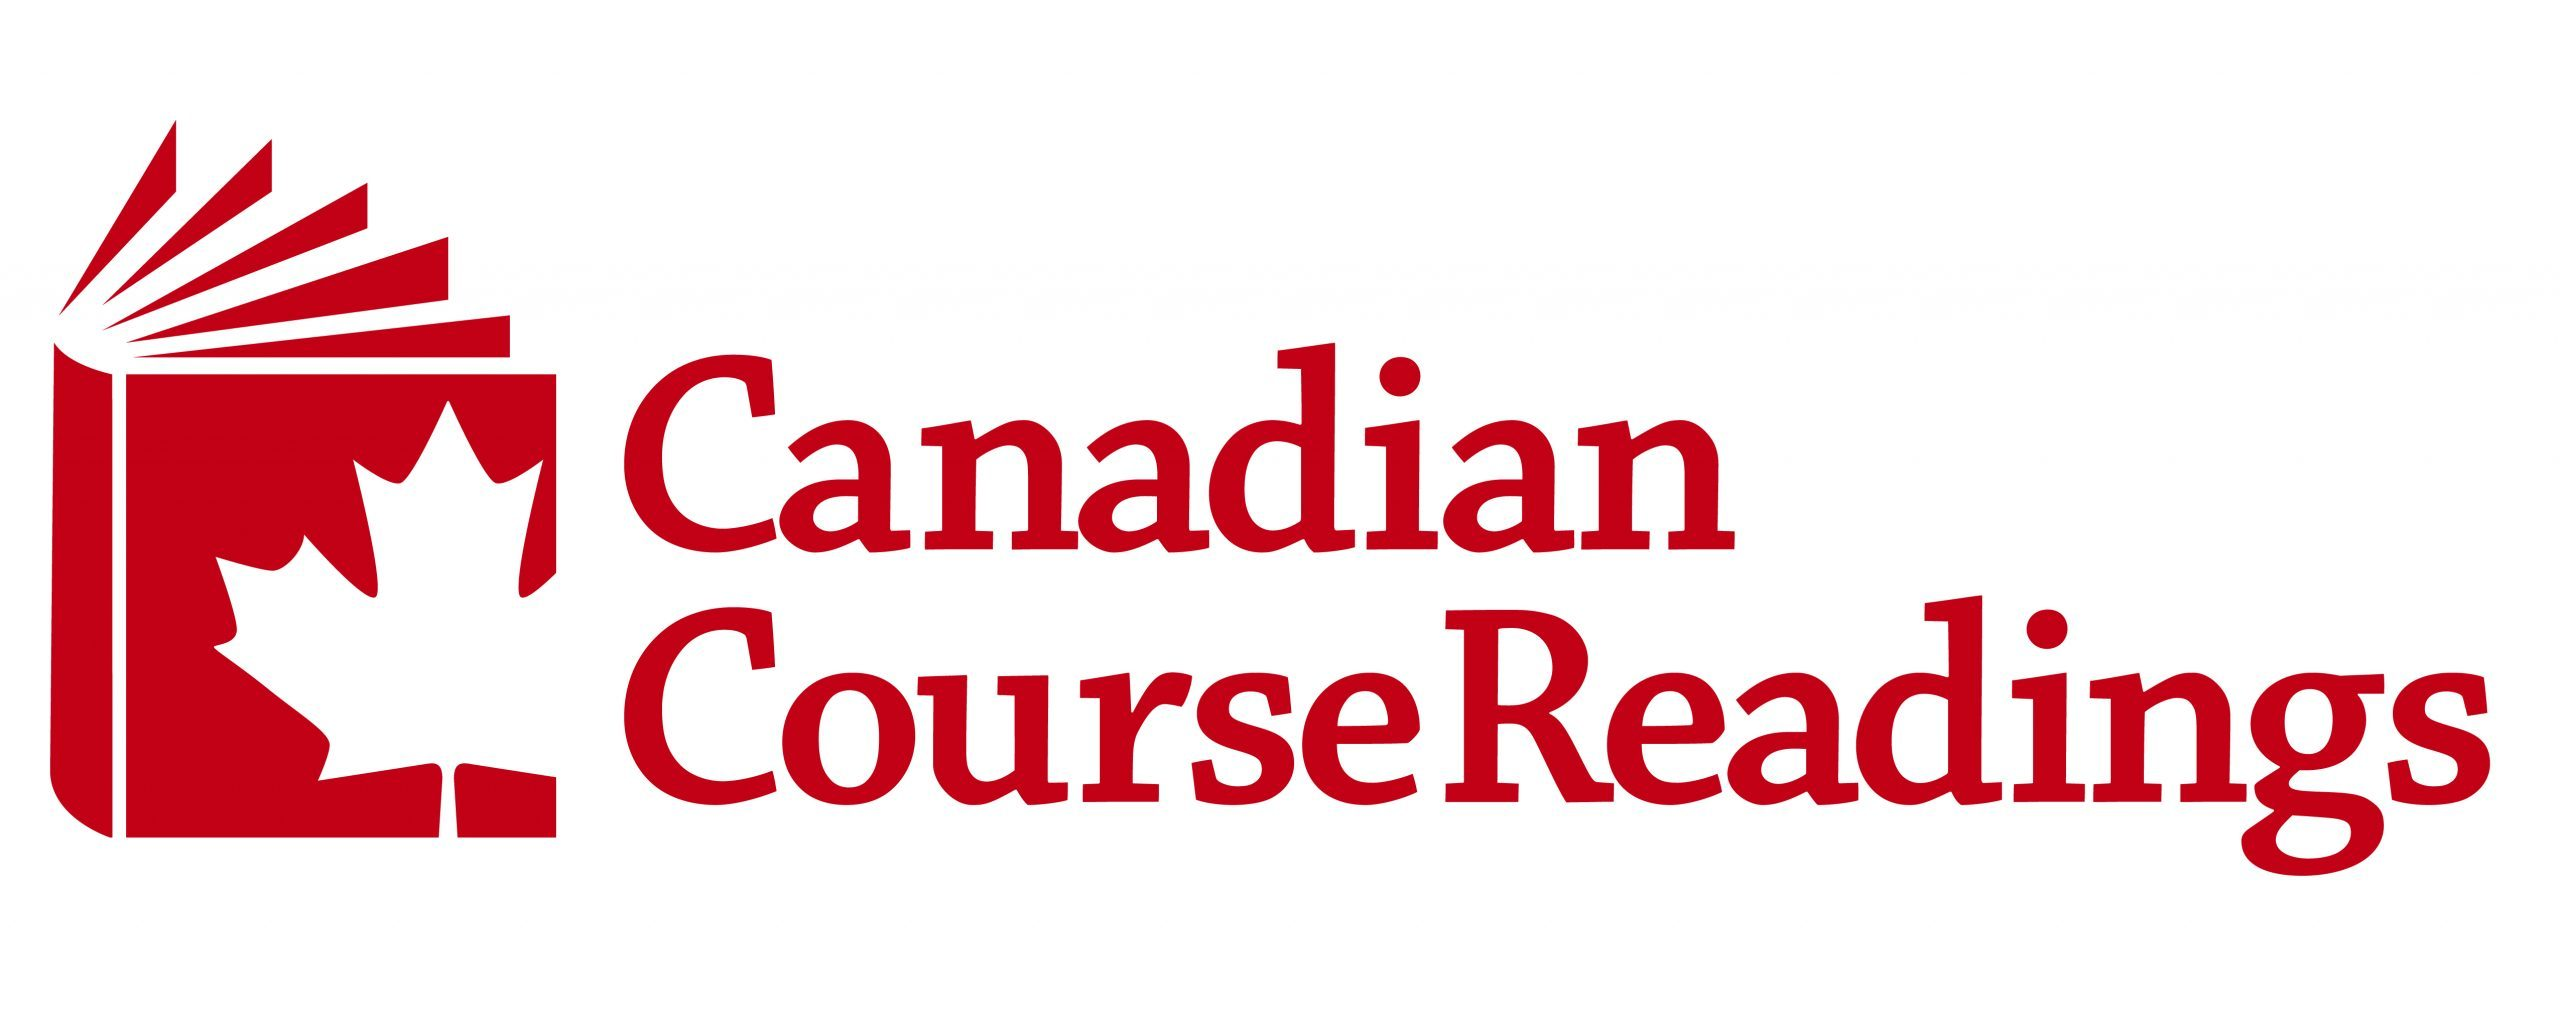 Canadian Course Readings